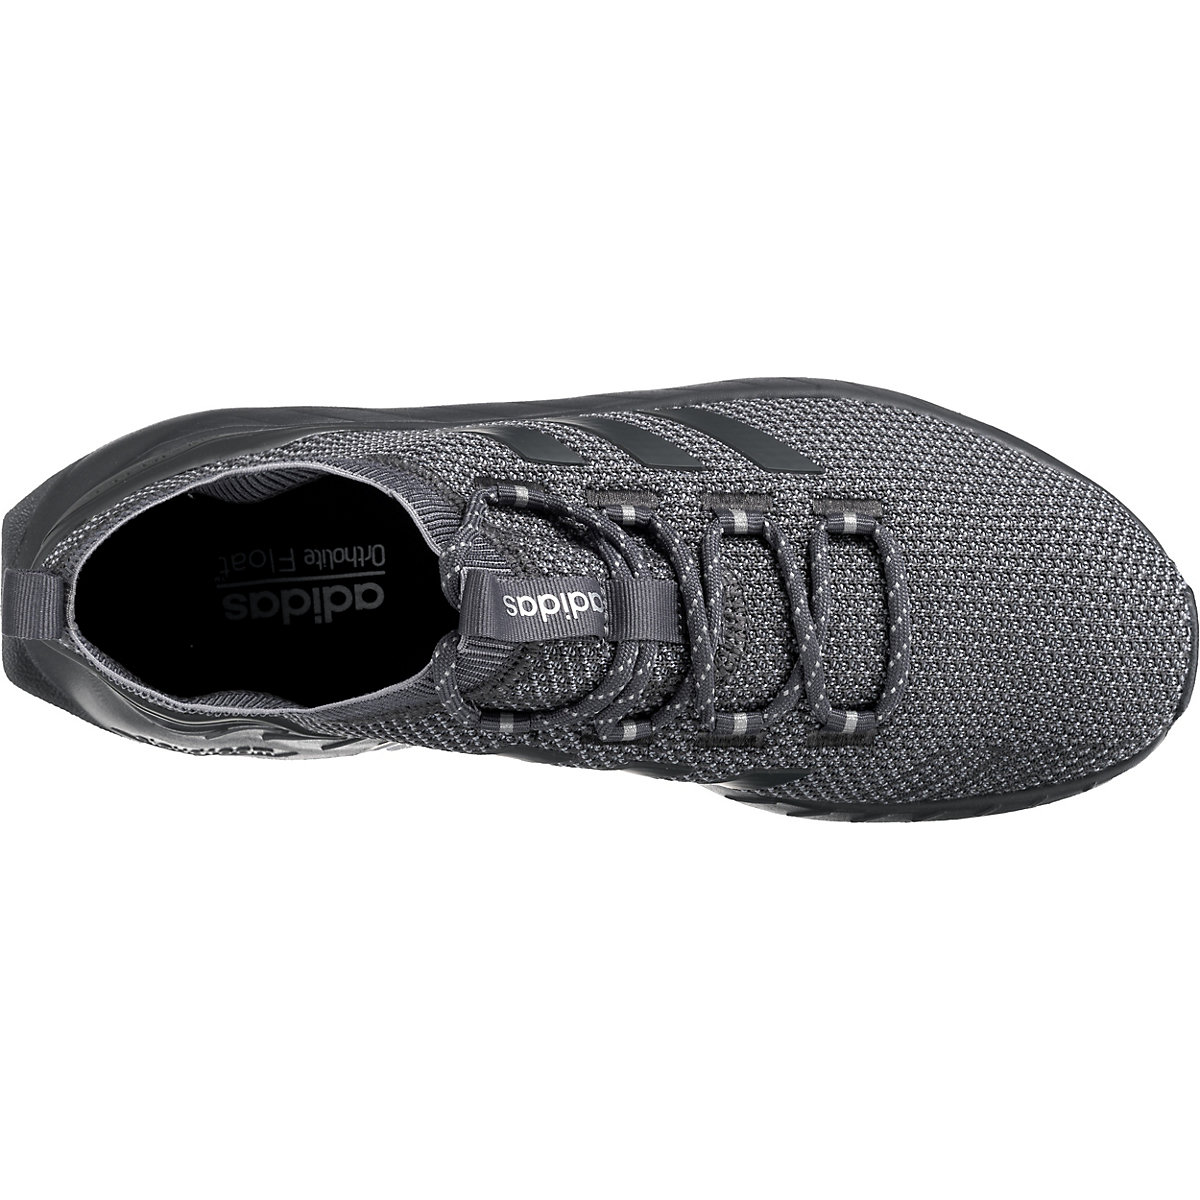 Adidas Sport Inspired, Questar Rise Sneakers Low, Dunkelgrau